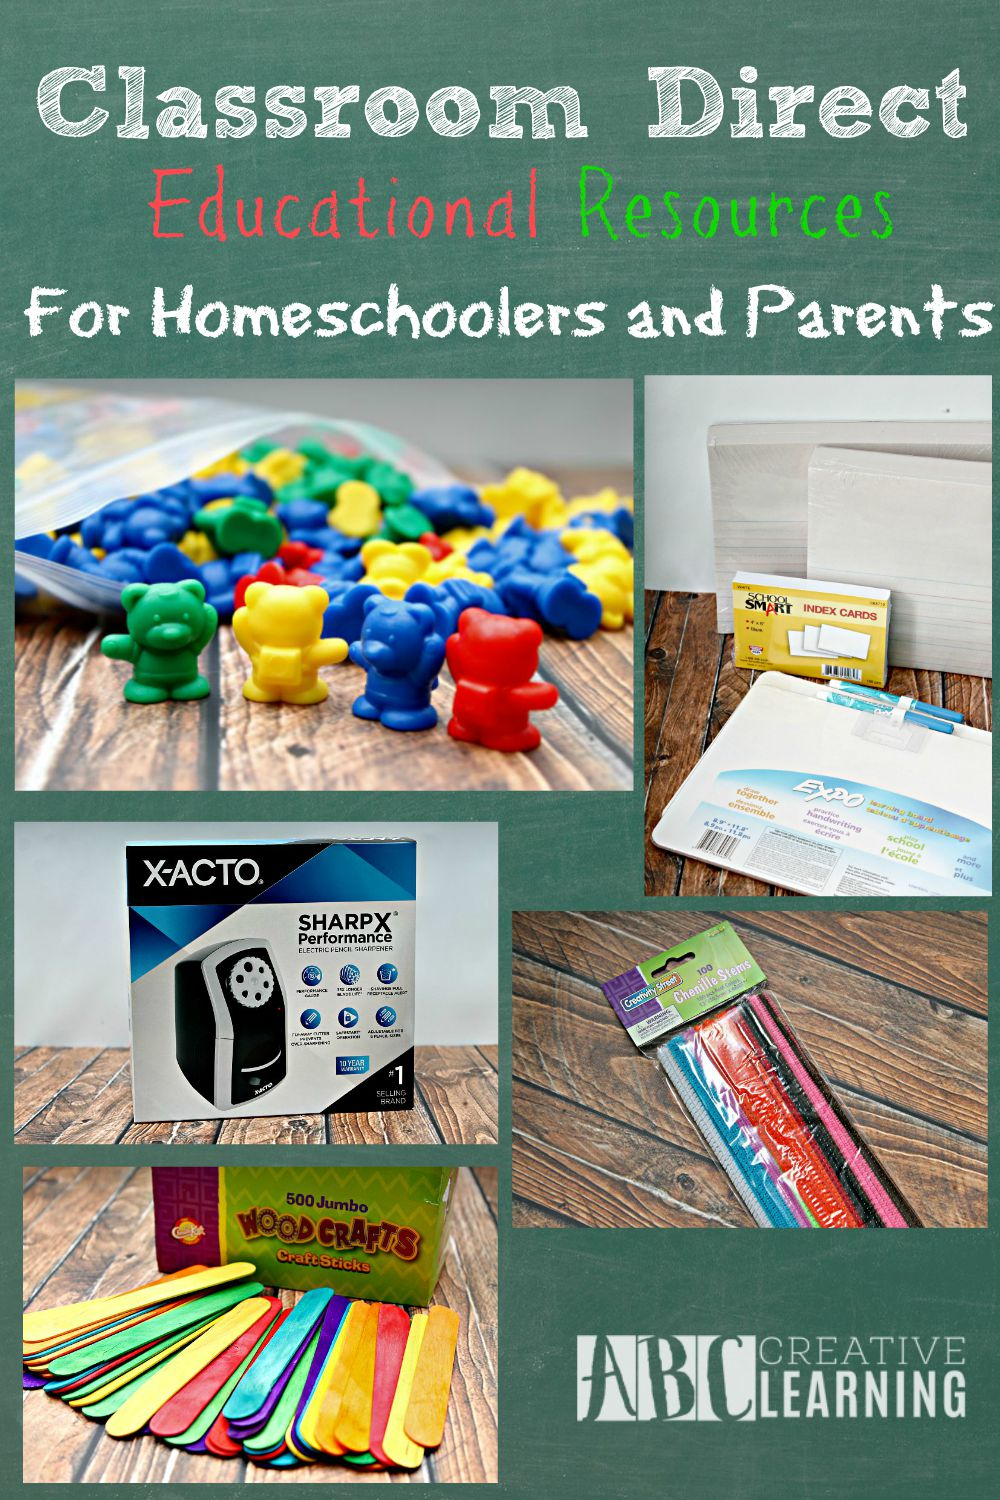 Classroom Direct Educational Resources for Homeschoolers and Parents